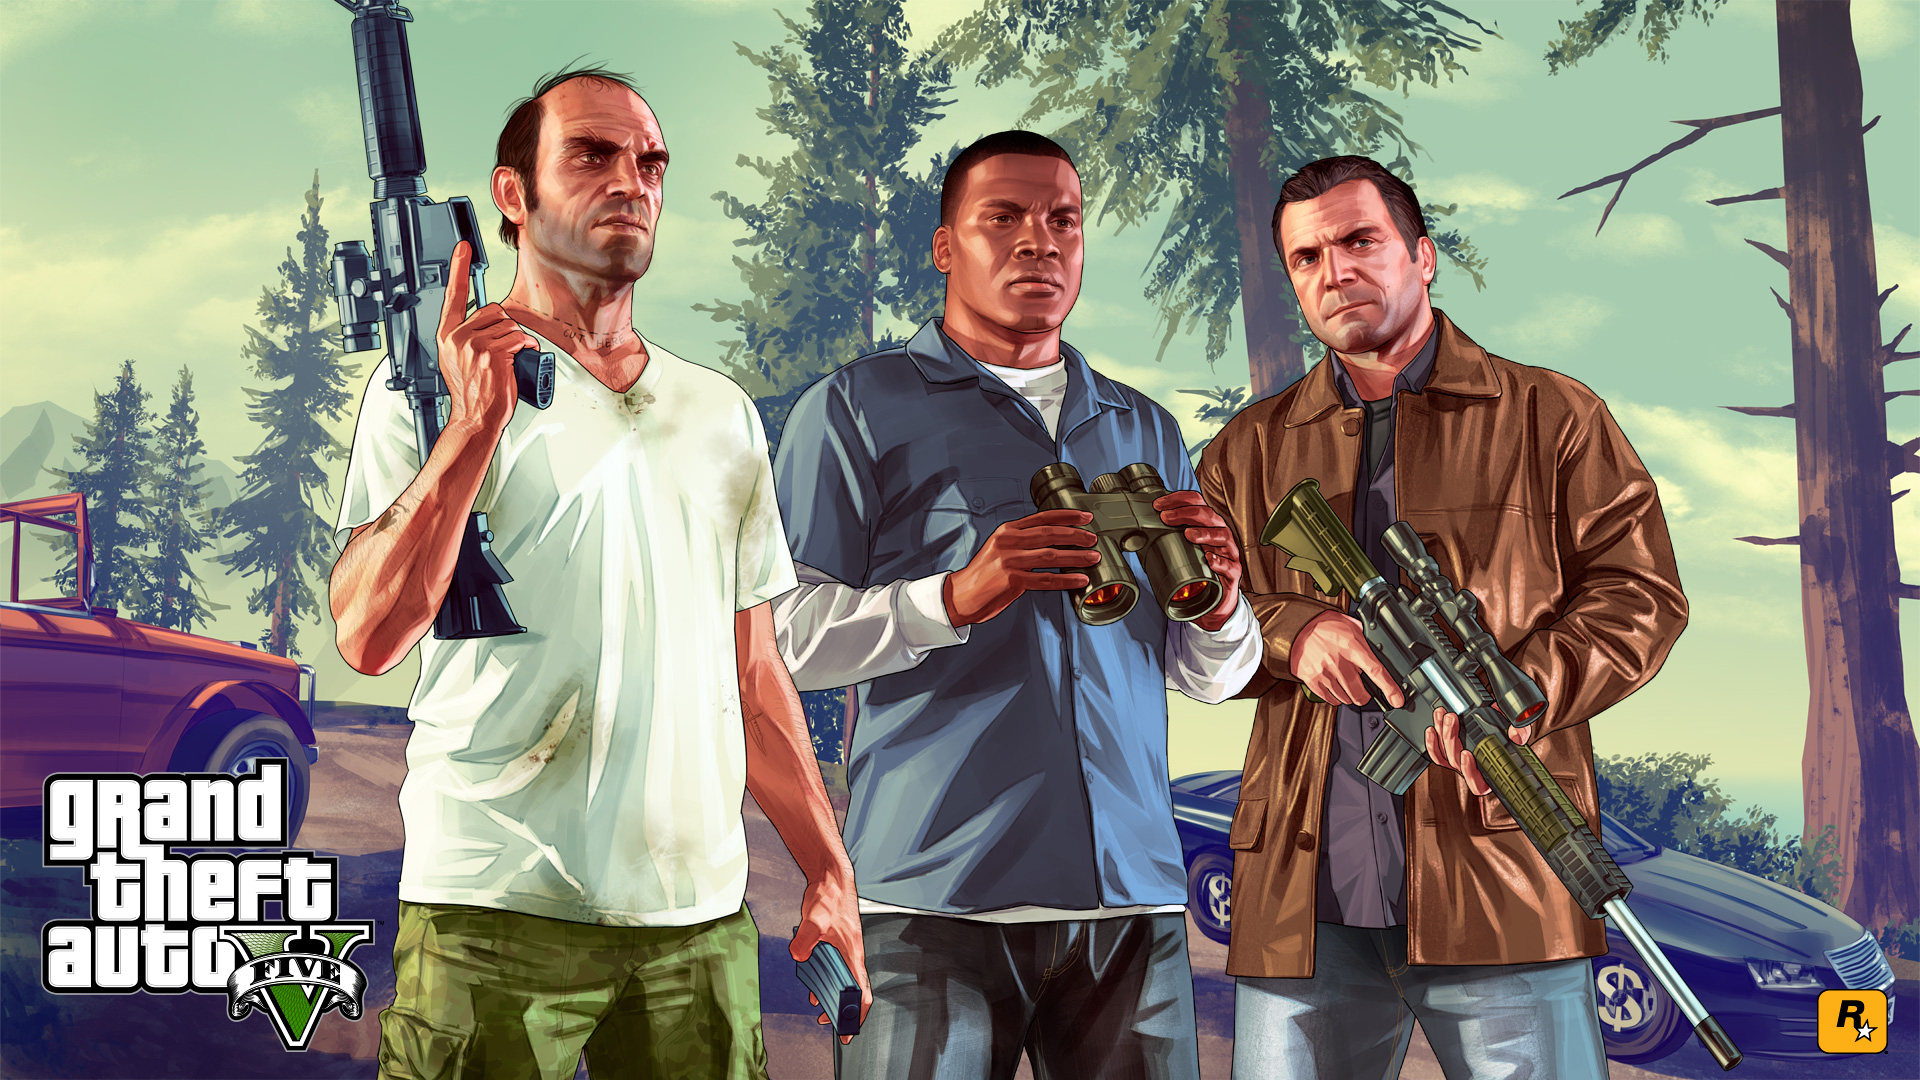 Foto de Take-Two revela potencial em remasters de GTA